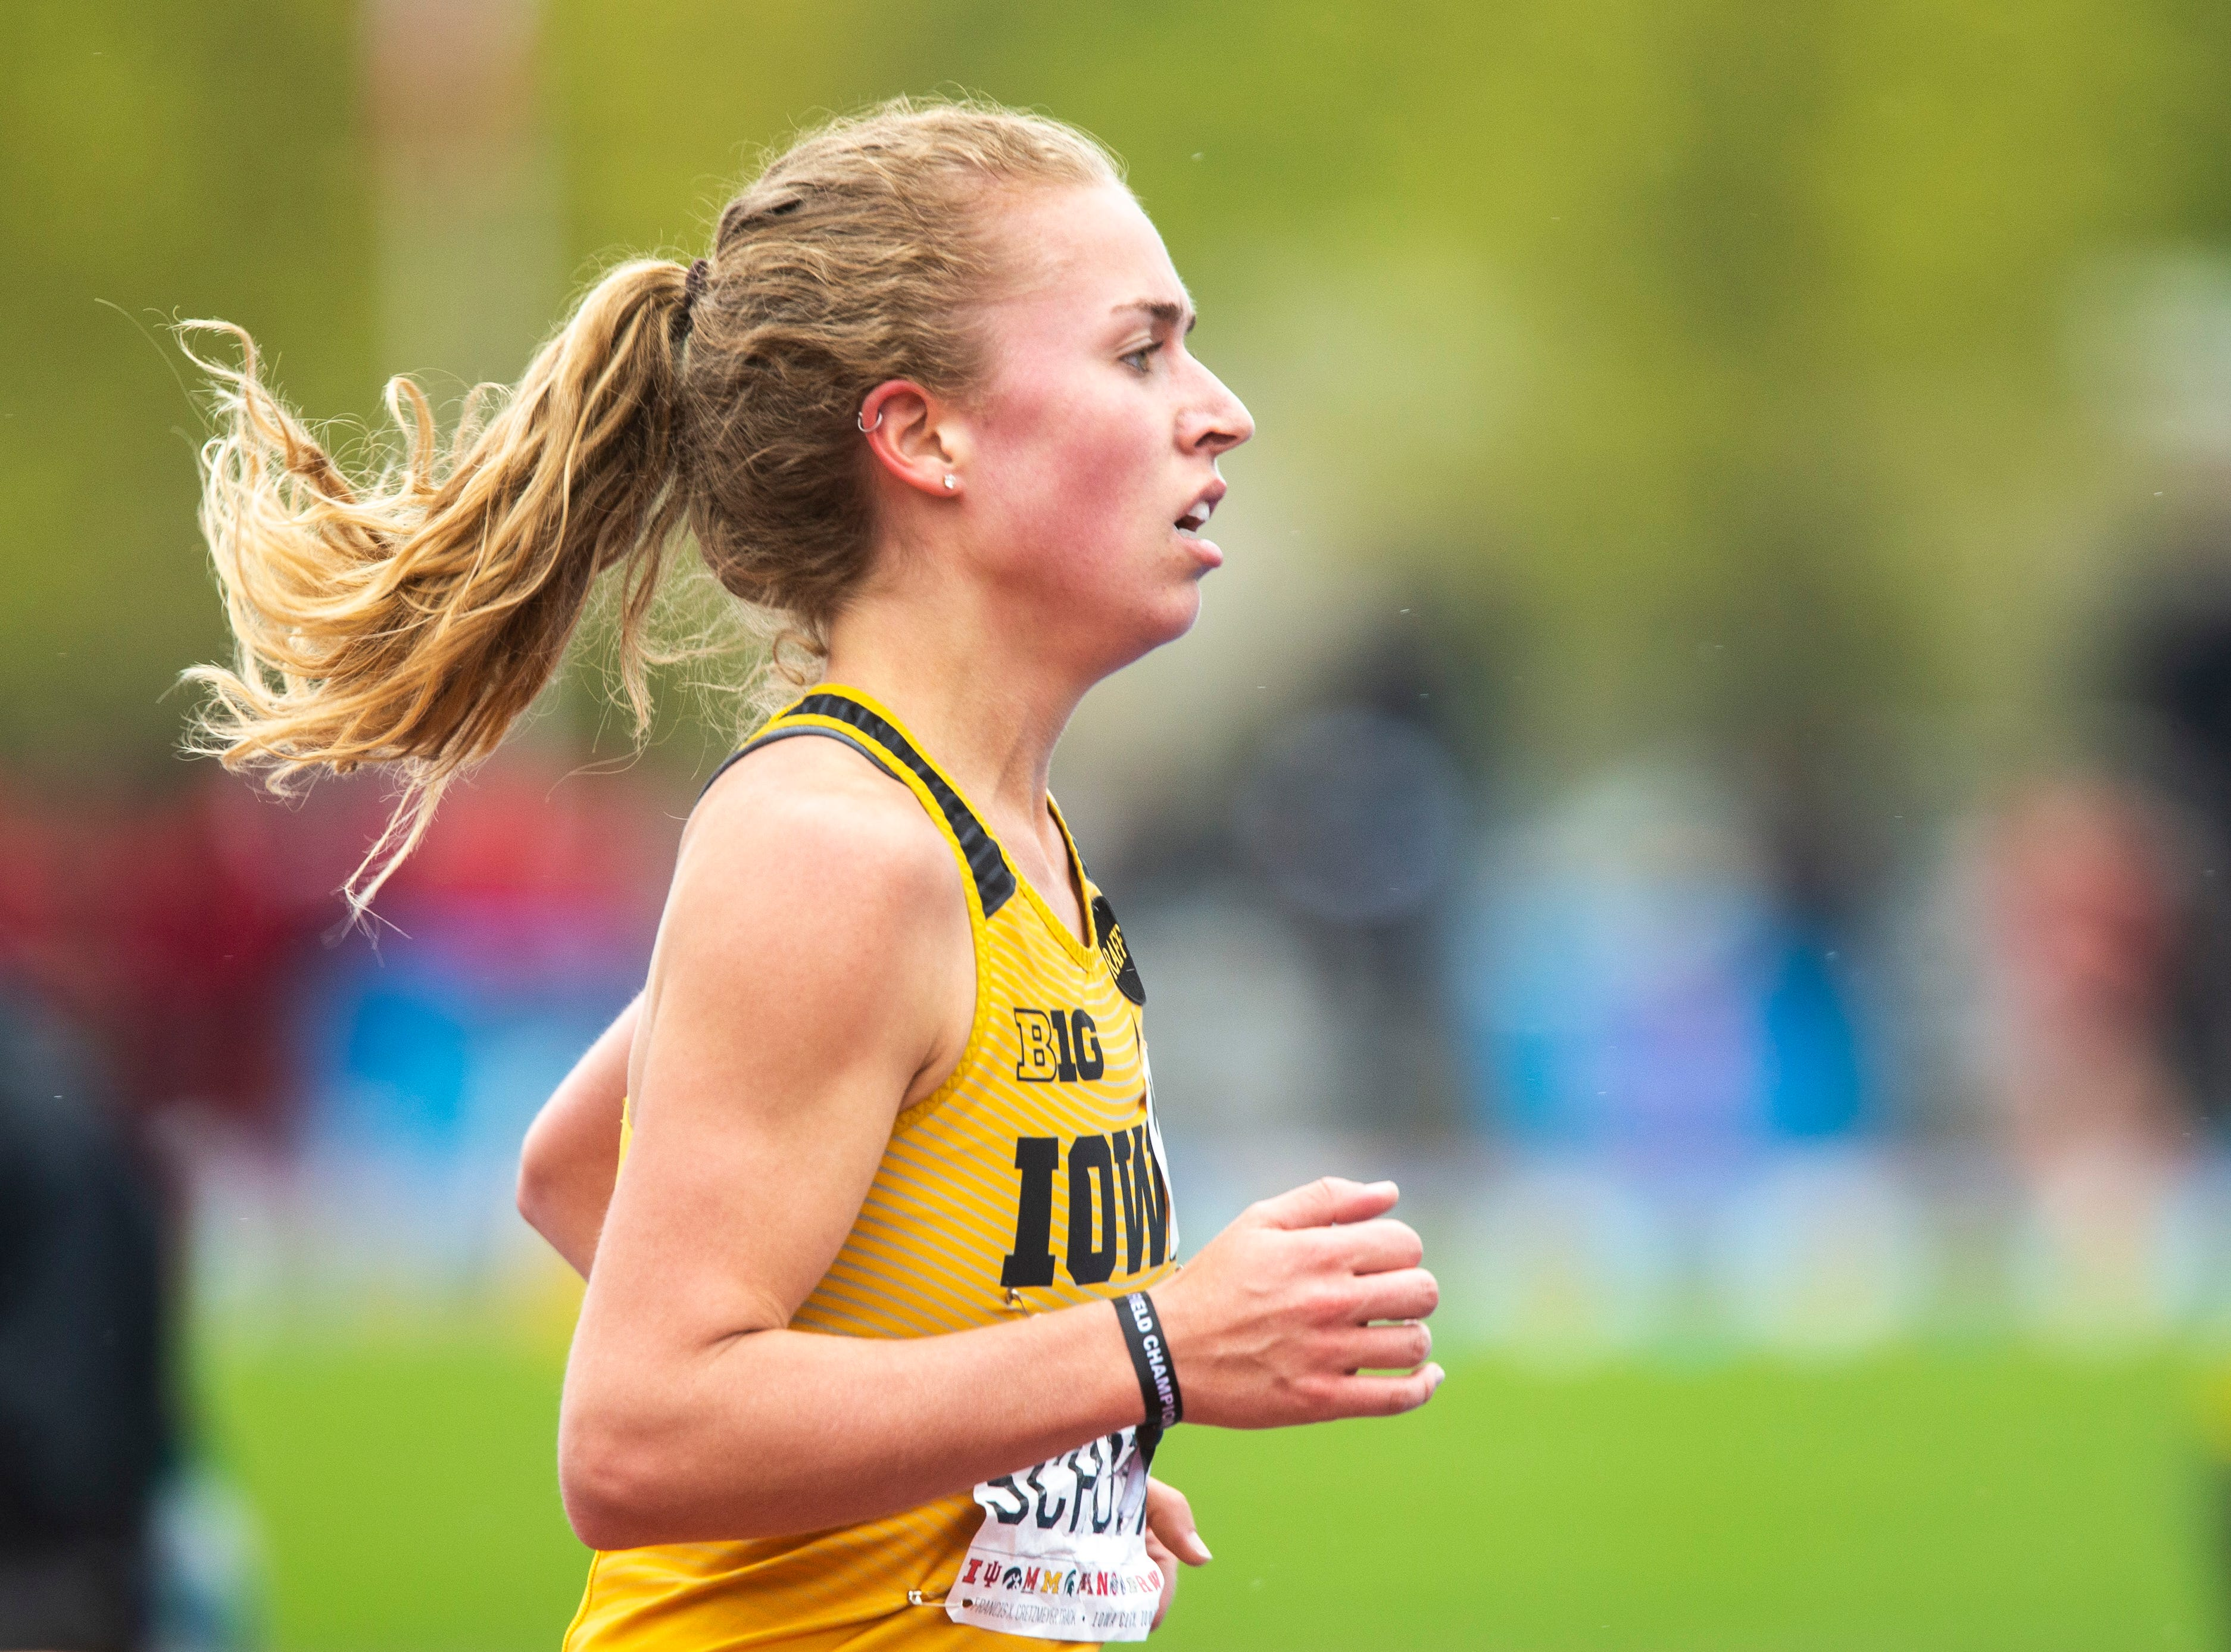 Iowa junior Megan Schott competes in the 5,000 meter finals during the final day of Big Ten track and field outdoor championships, Sunday, May 12, 2019, at Francis X. Cretzmeyer Track on the University of Iowa campus in Iowa City, Iowa.